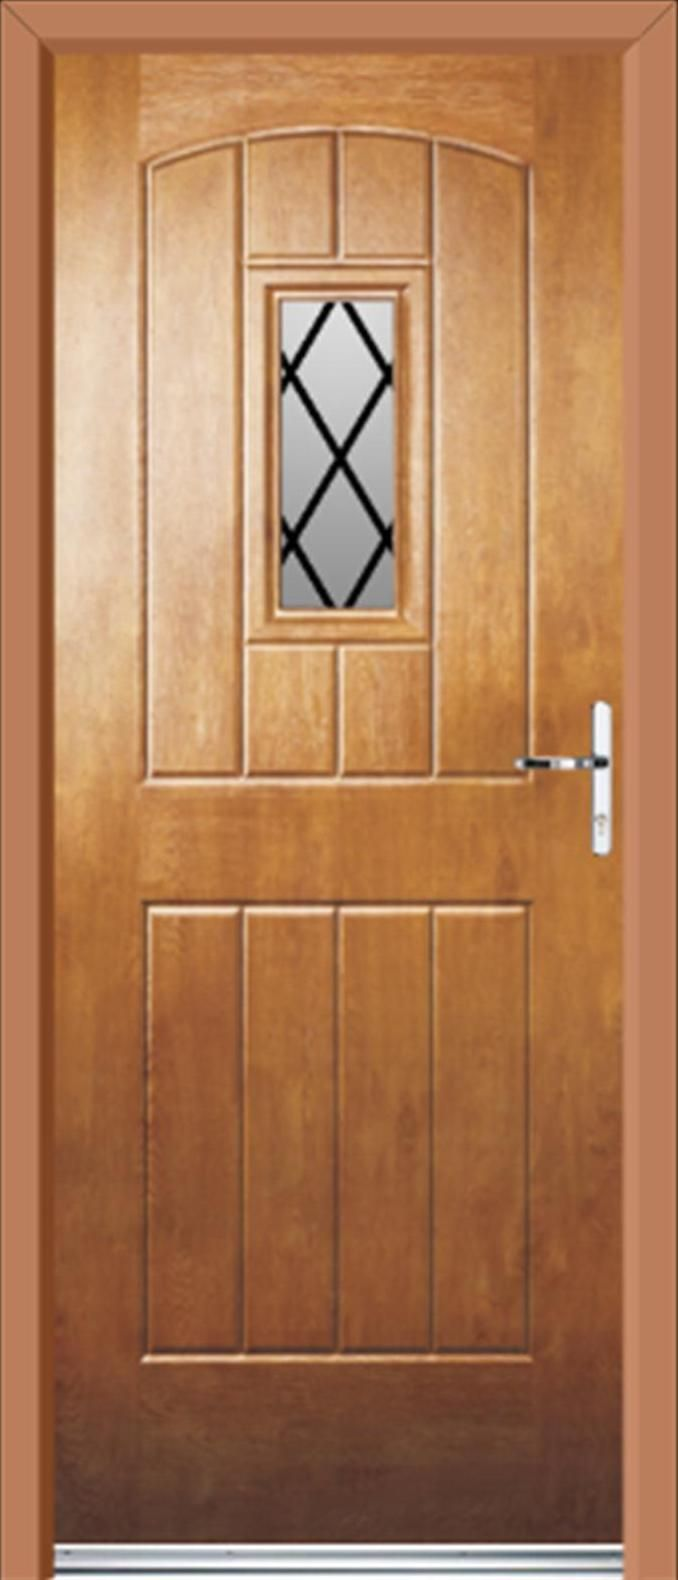 Cottage style exterior doors upvc doors english cottage for Cottage style front doors